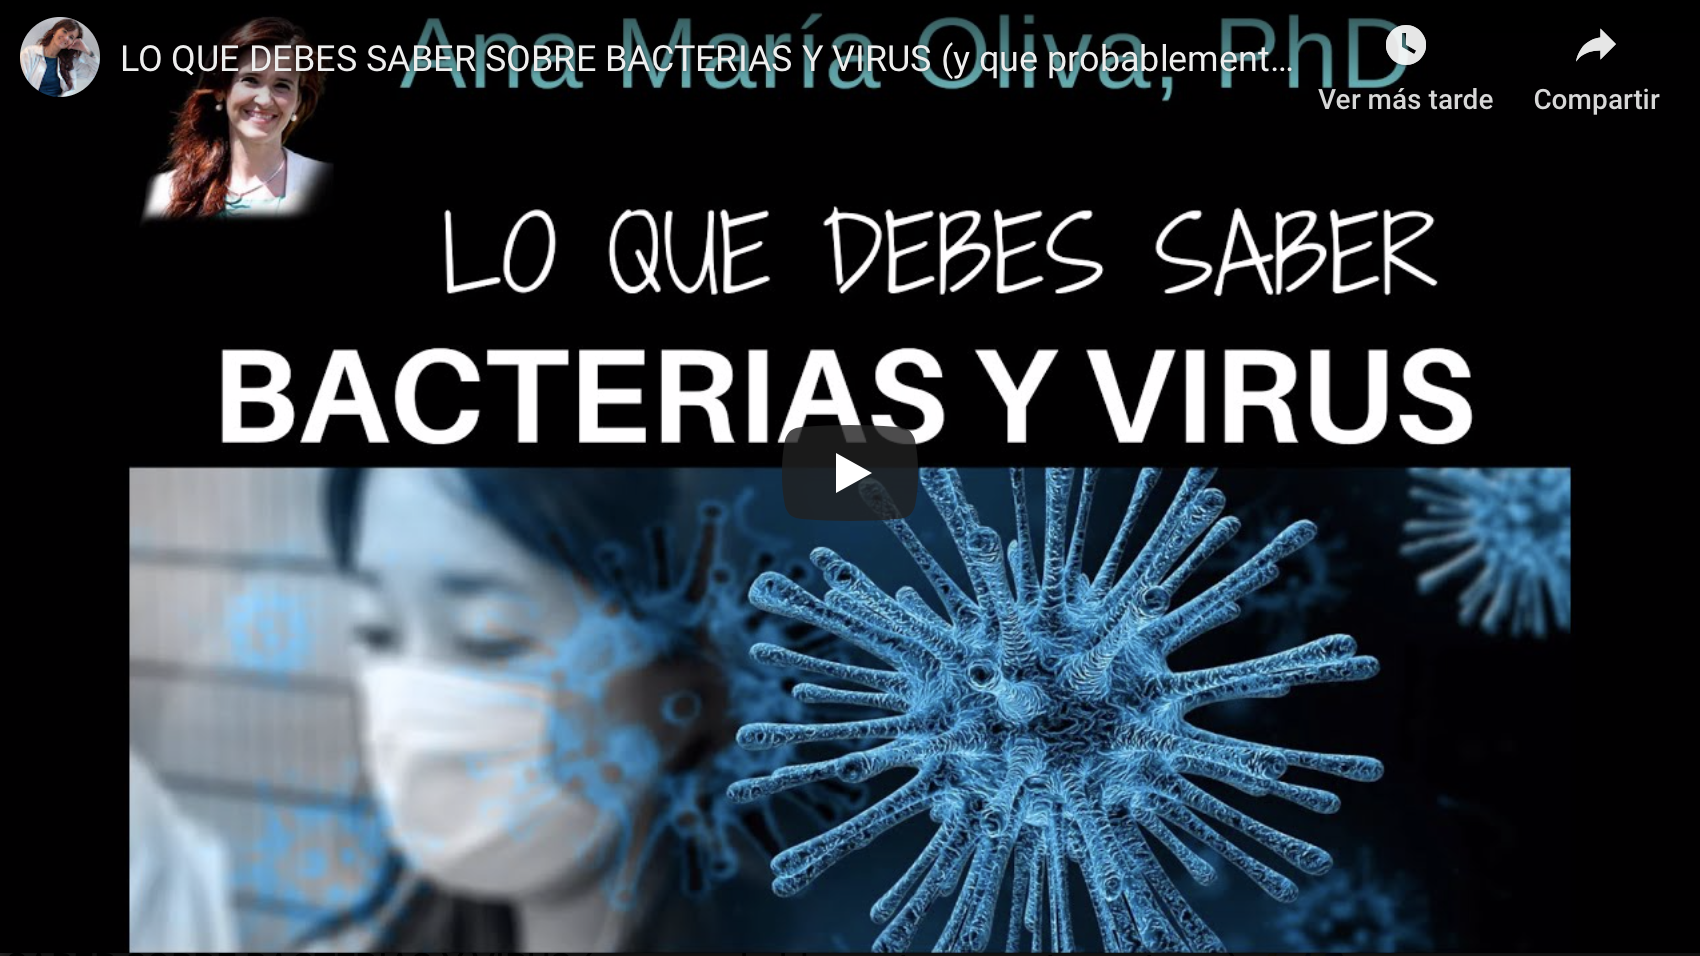 VER VIDEO: LO QUE DEBES SABER SOBRE BACTERIAS Y VIRUS